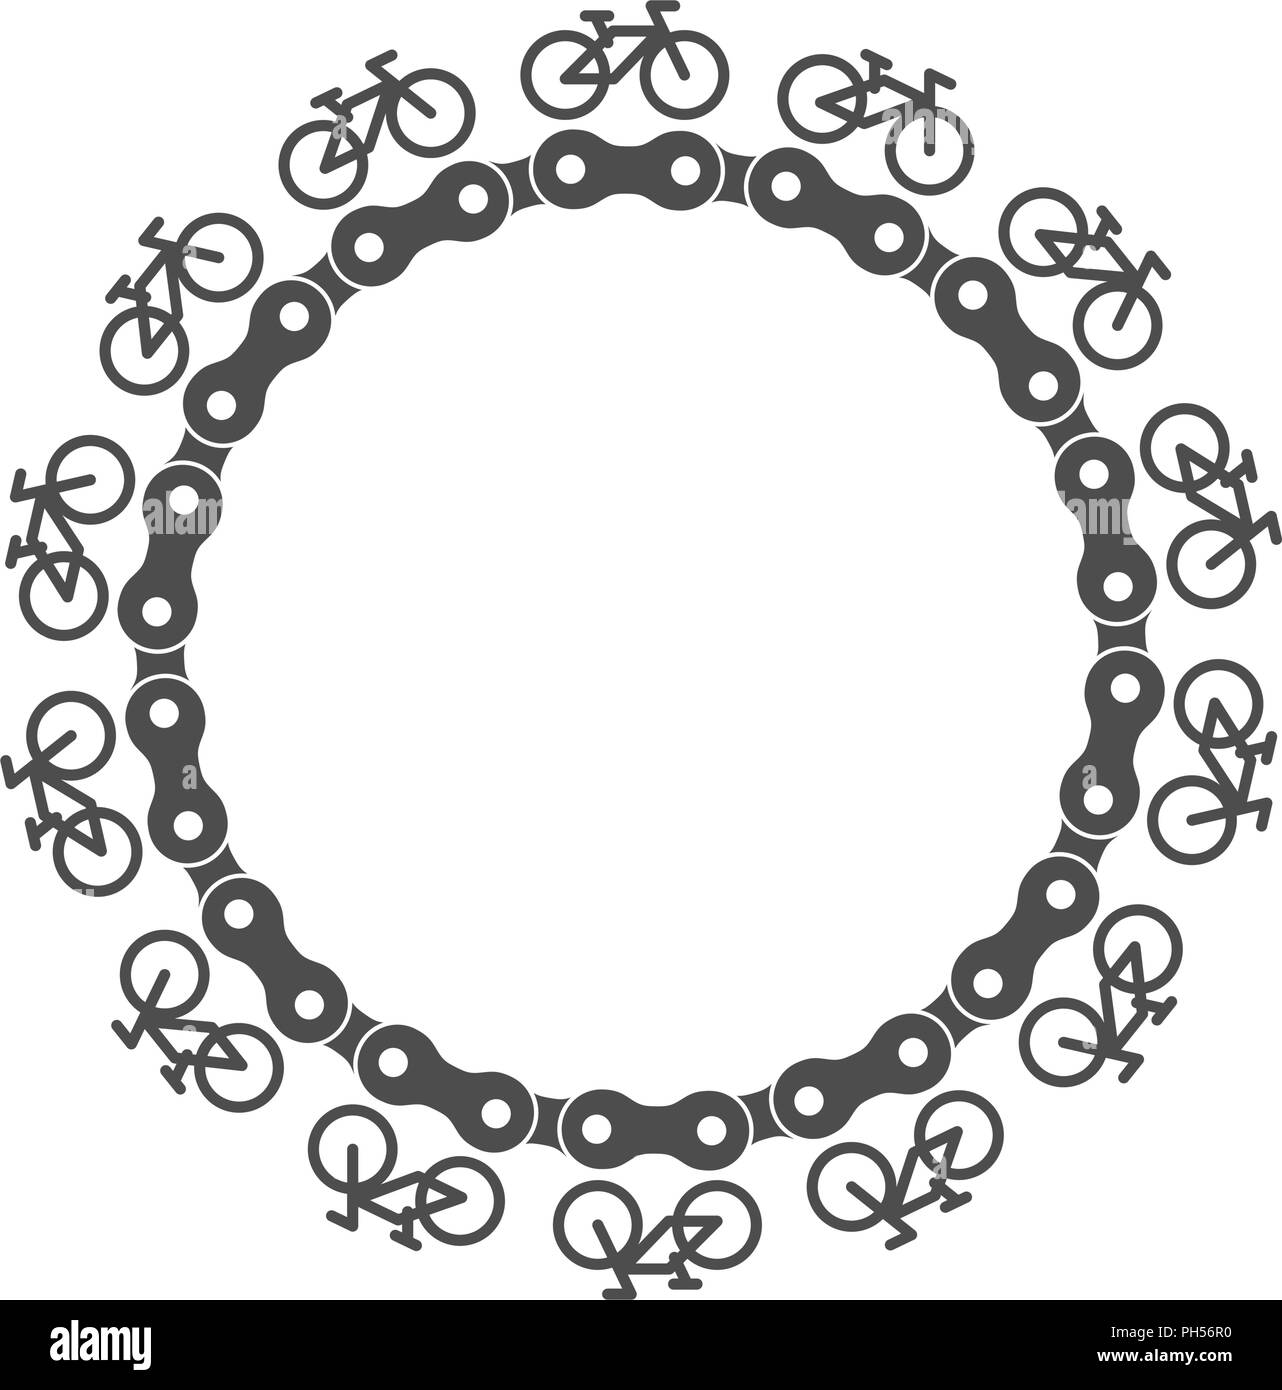 Bicycle Chain Frame Stock Photos & Bicycle Chain Frame Stock Images ...